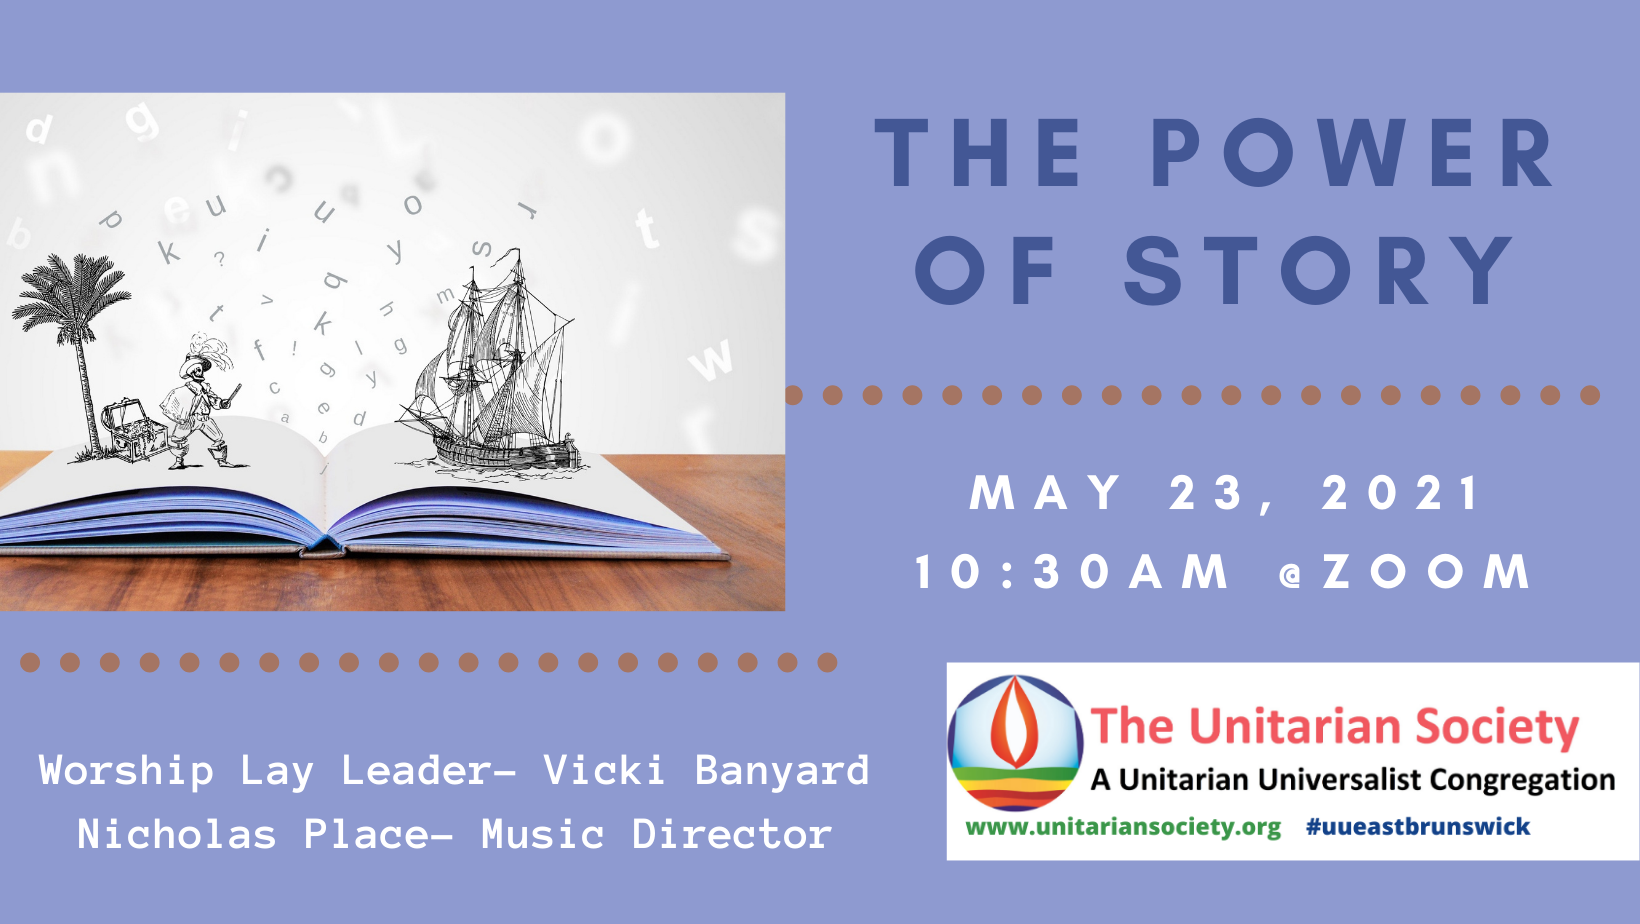 Sunday Service — May 23, 2021 @10:30AM — Power of Story